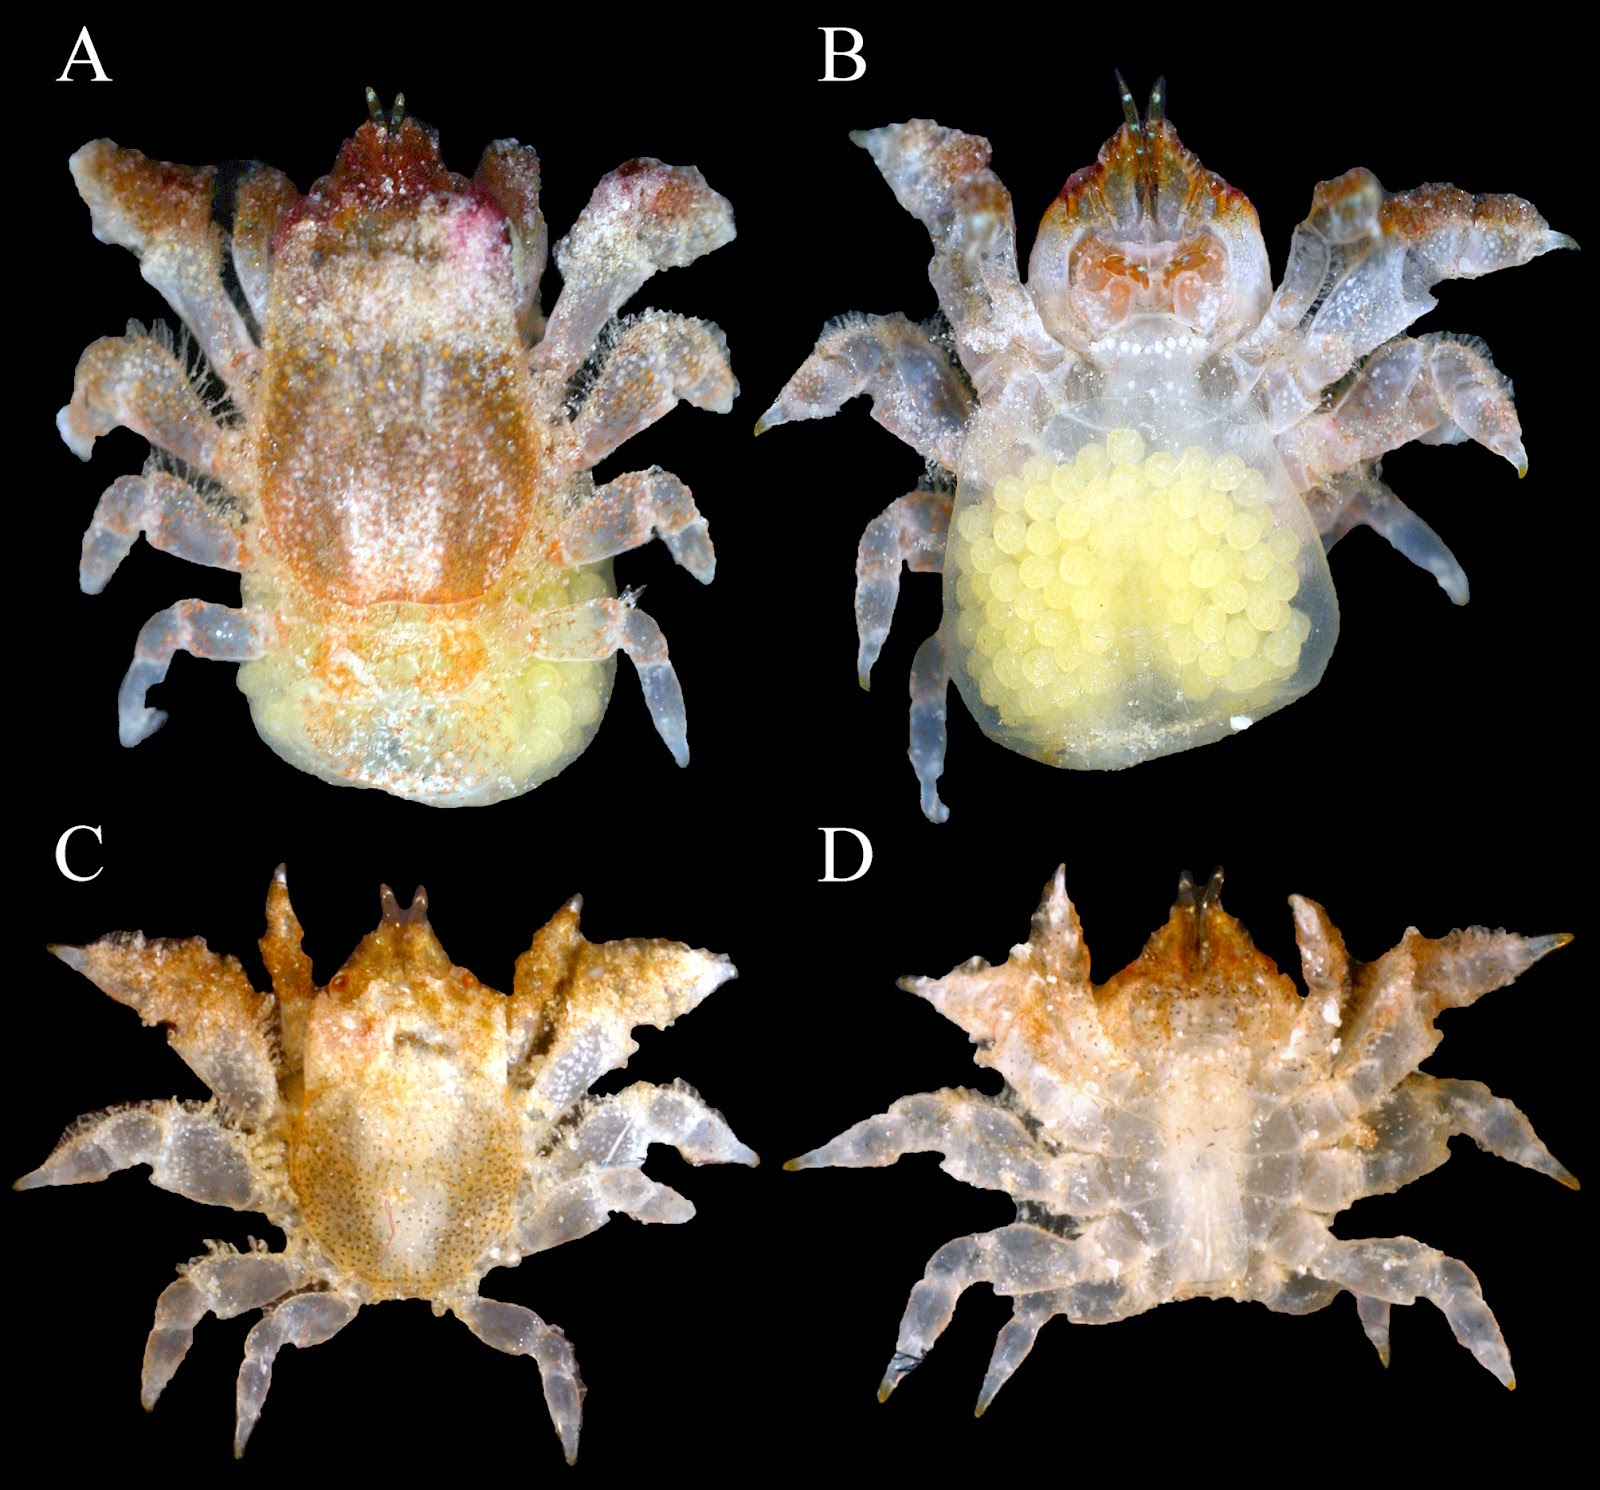 http://sciencythoughts.blogspot.co.uk/2014/10/a-new-species-of-gall-crab-from.html